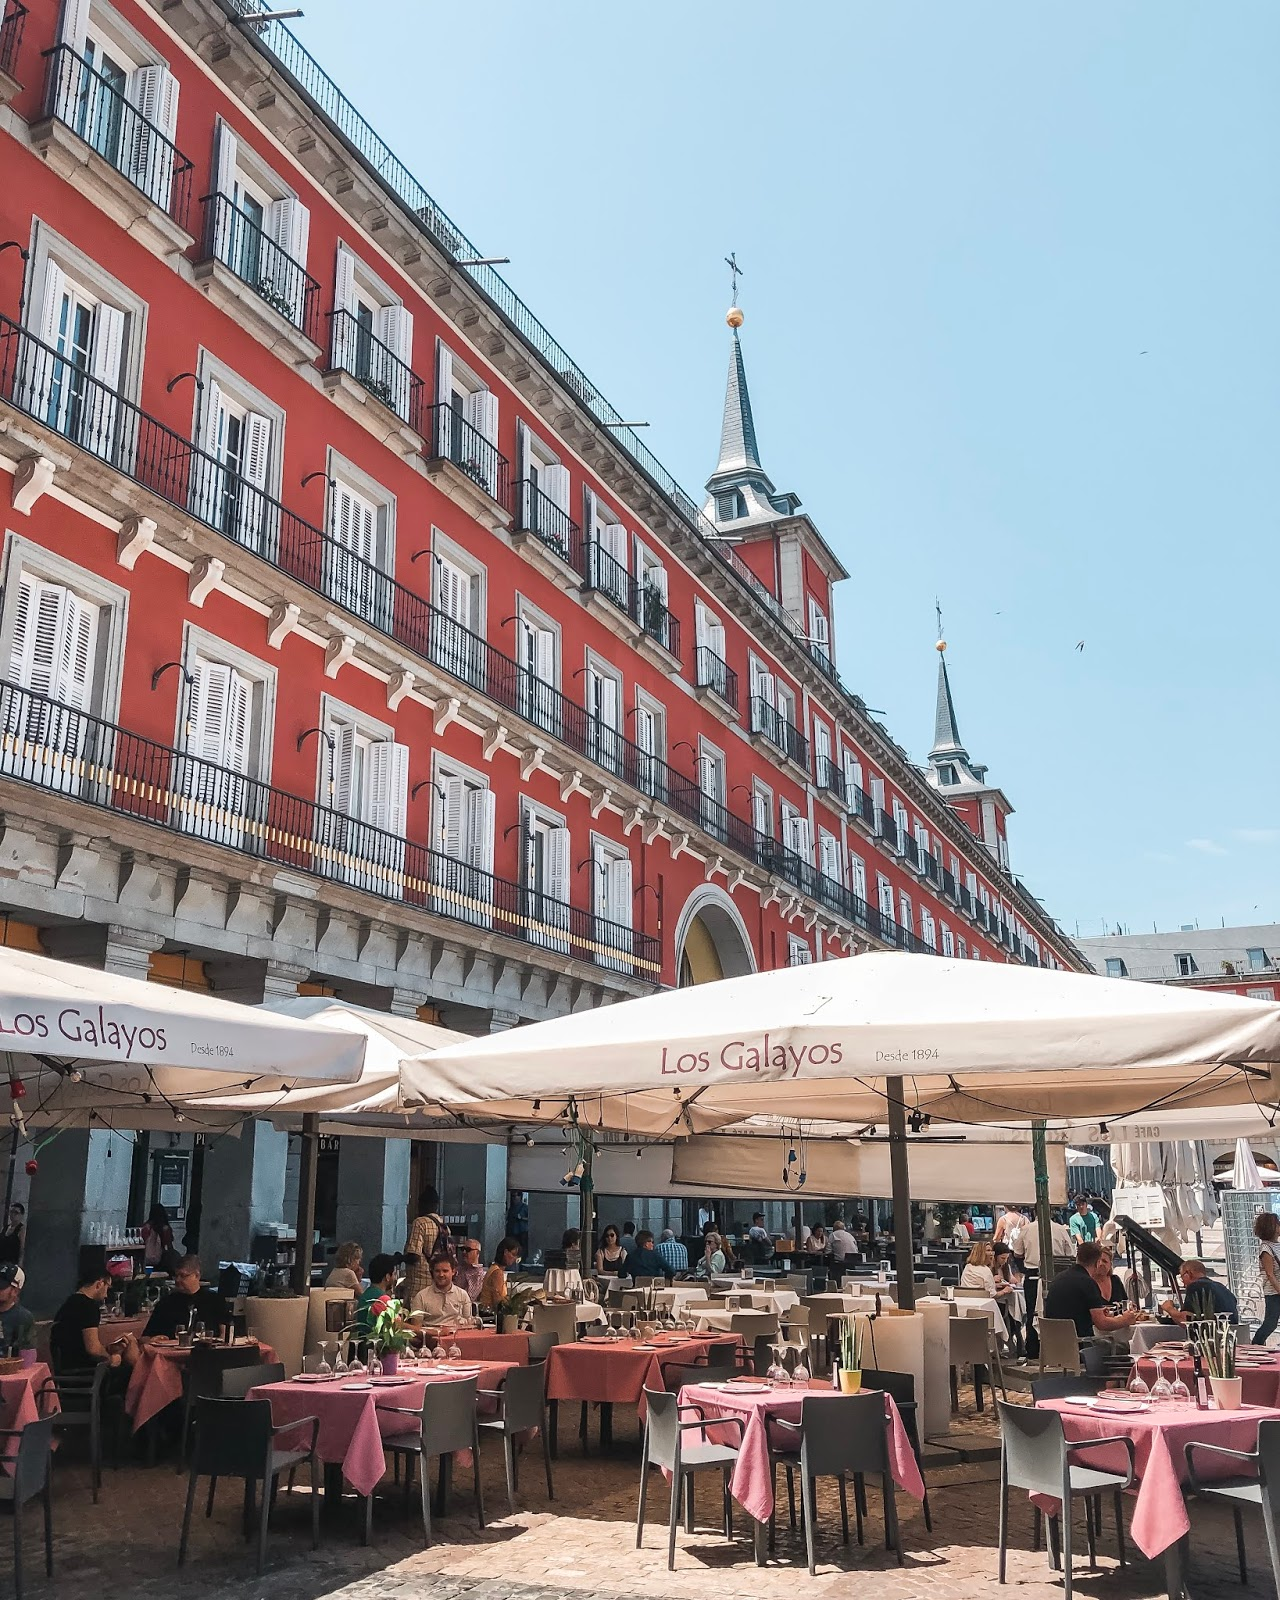 Weekend in Madrid, Madrid tips, Madrid hotspots, copyright Eline Rewinkel